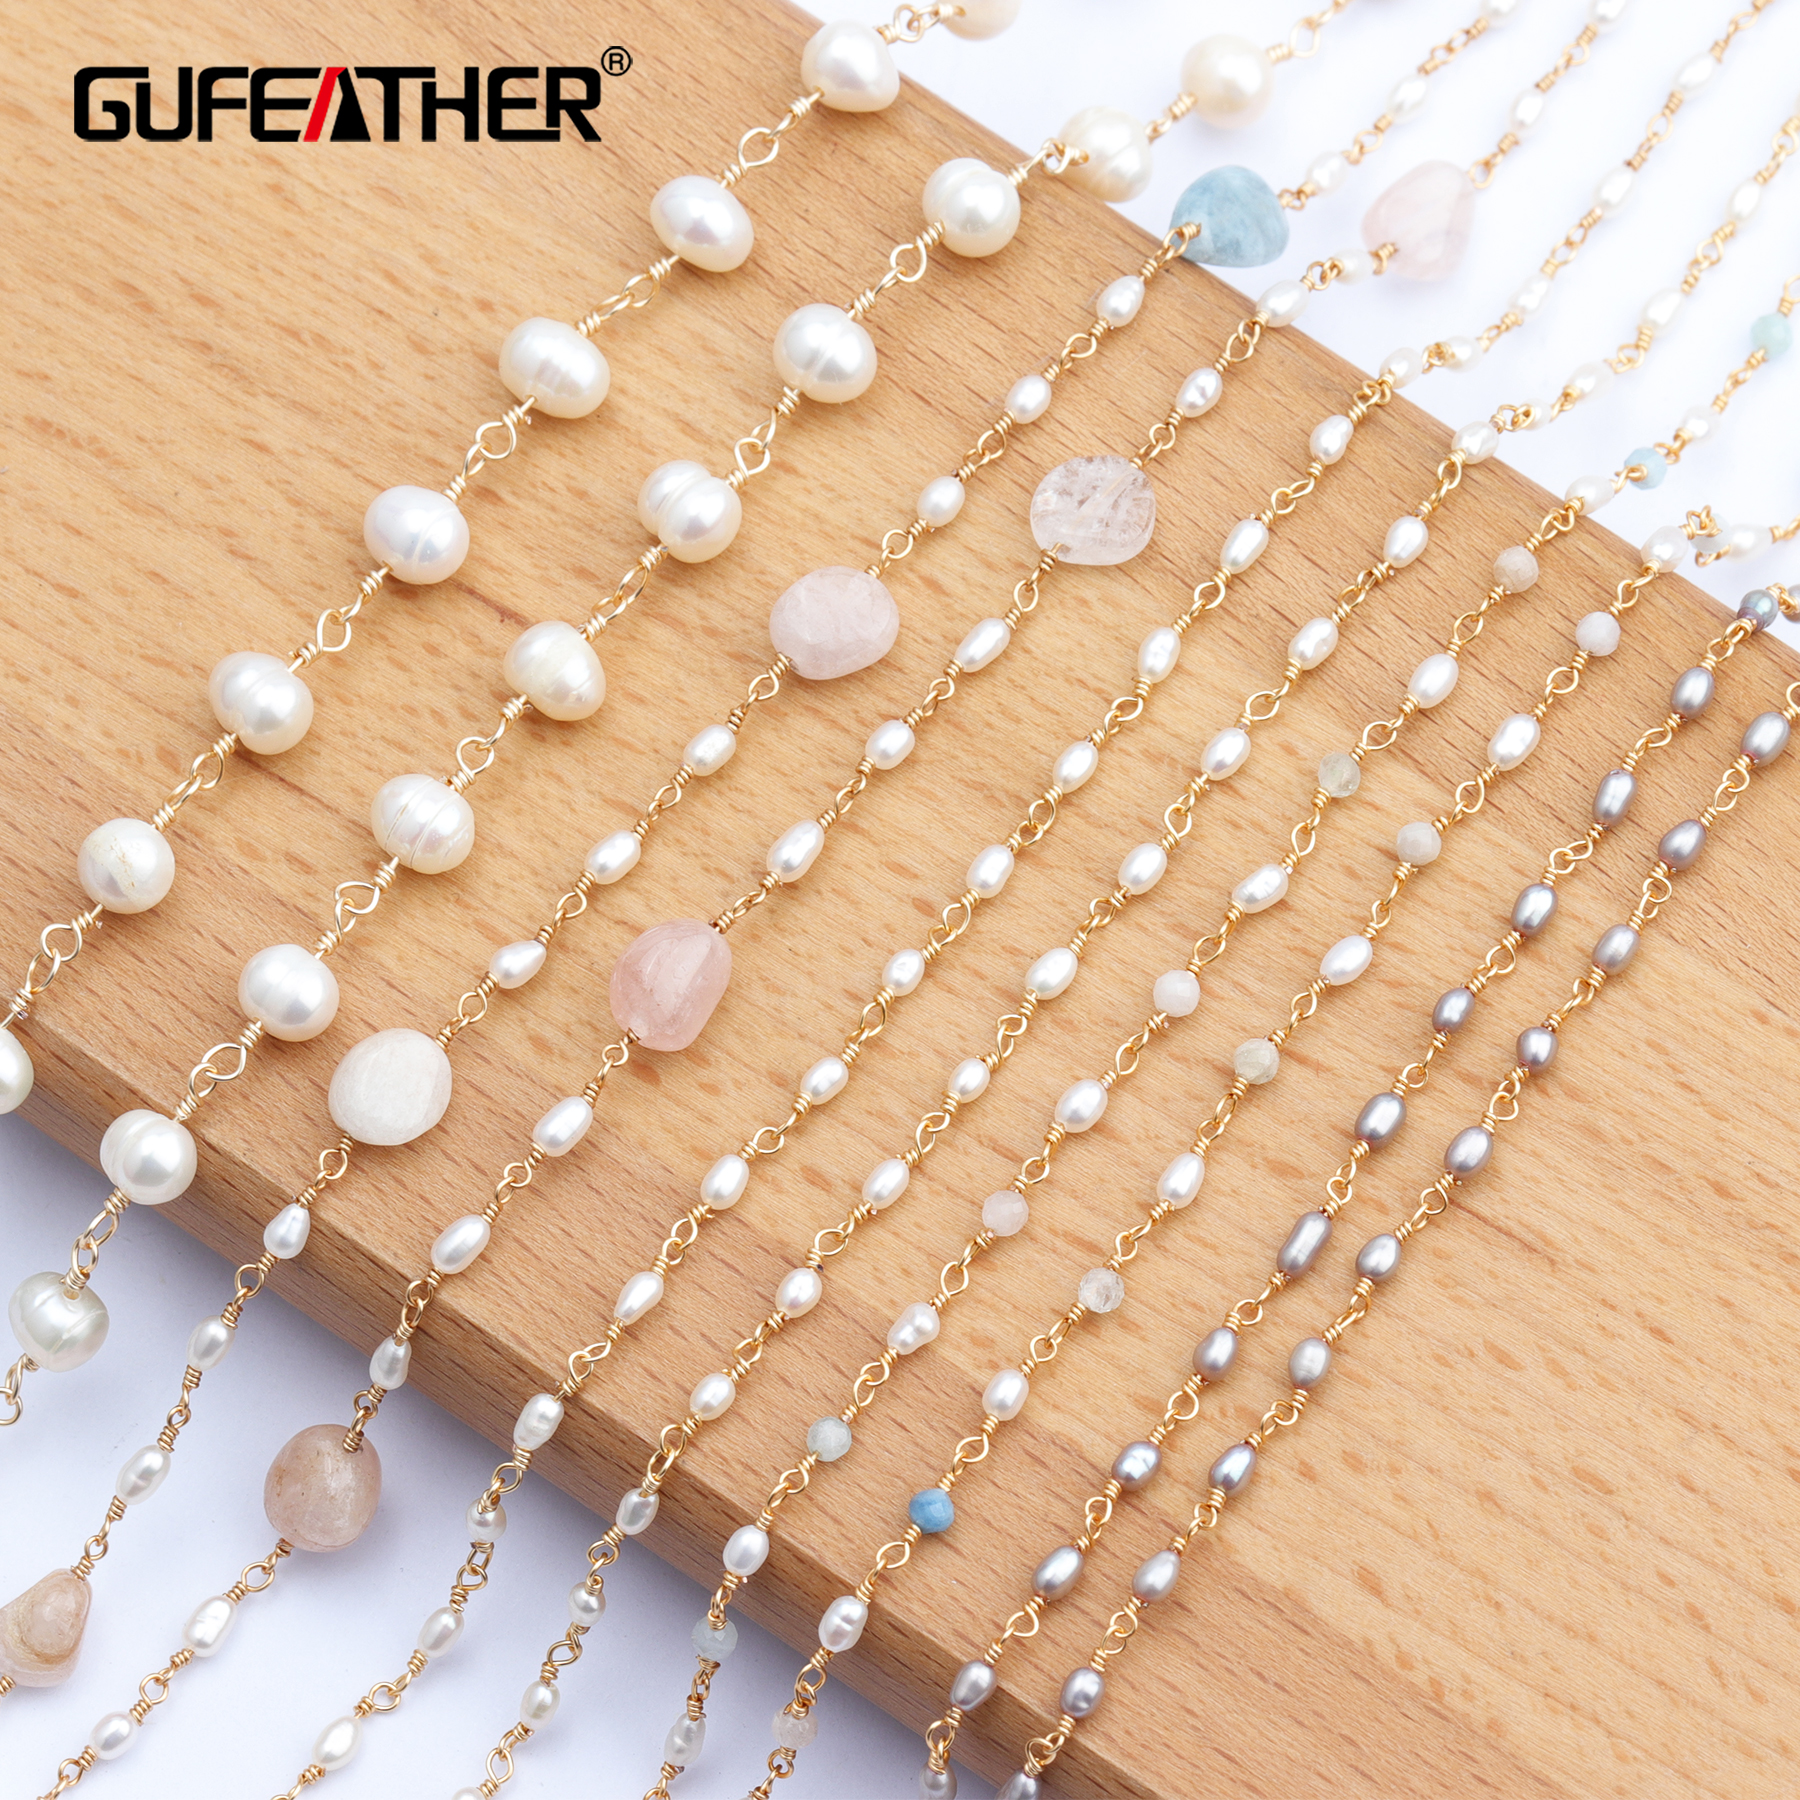 GUFEATHER C71,jewelry Accessories,diy Chain,18k Gold Plated,natural Stone Pearl,beads,jewelry Making,diy Chain Necklace,1m/lot